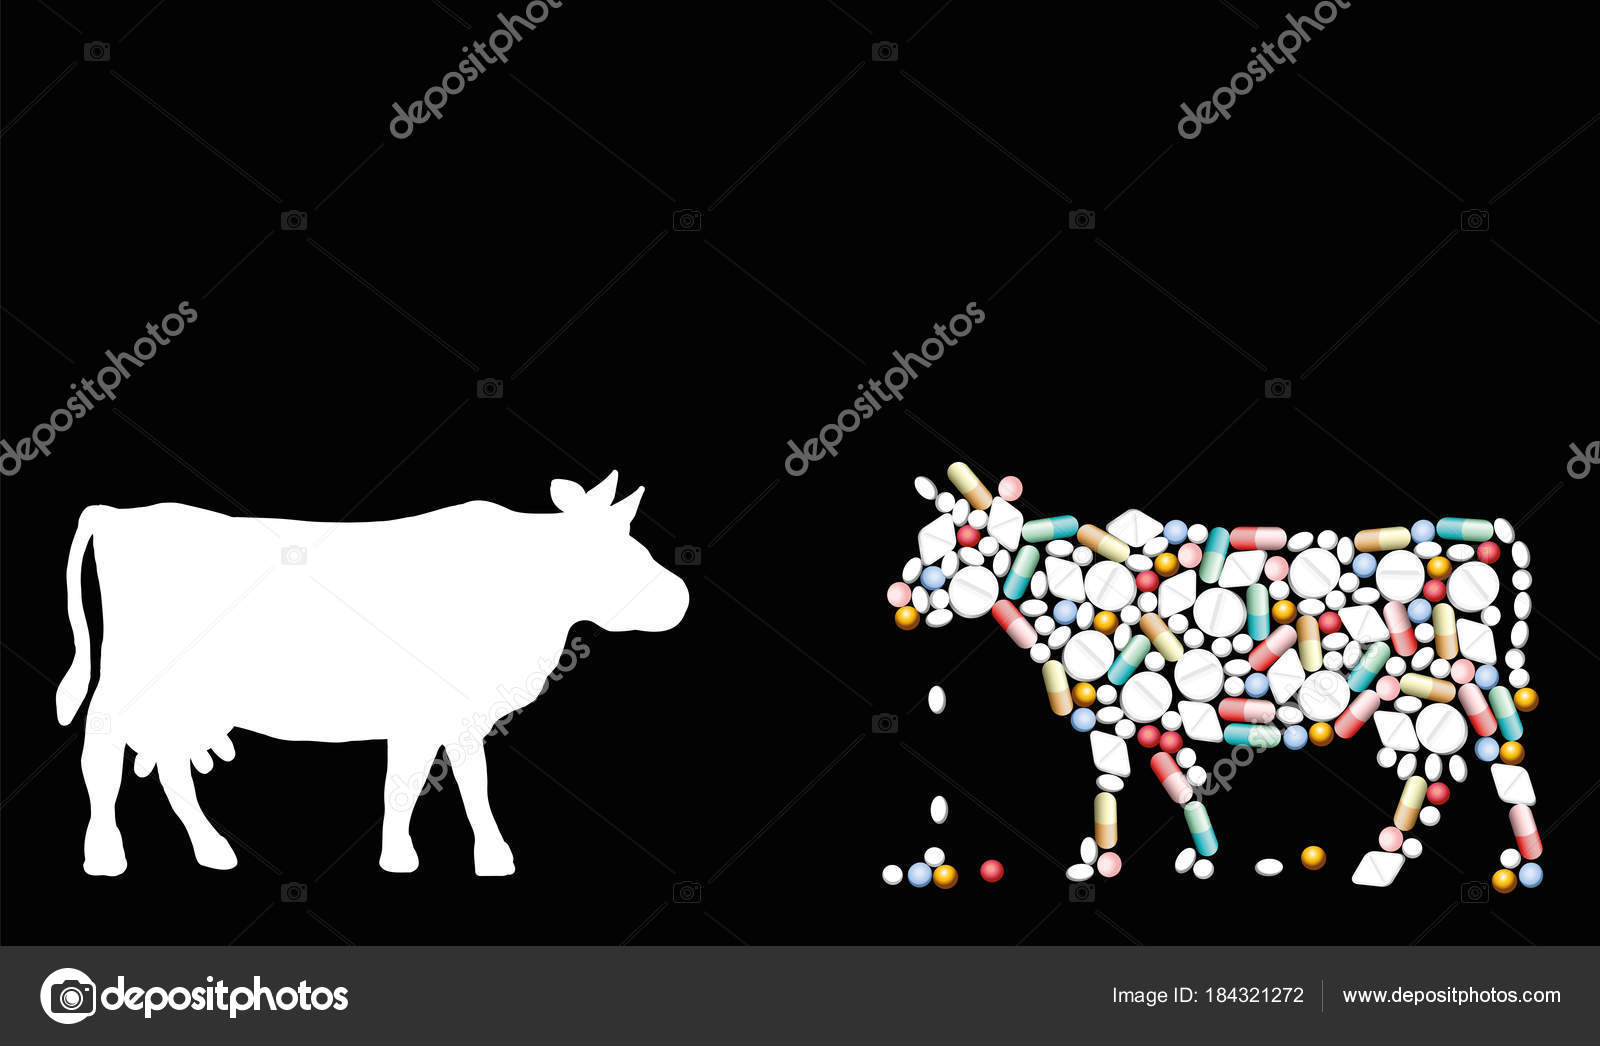 Cow pills pharmaceuticals cattle stock vector furian 184321272 pills that shape a cow symbol for cattle healthcare issues medicine pharmacy antibiotics and diet isolated vector illustration on black background buycottarizona